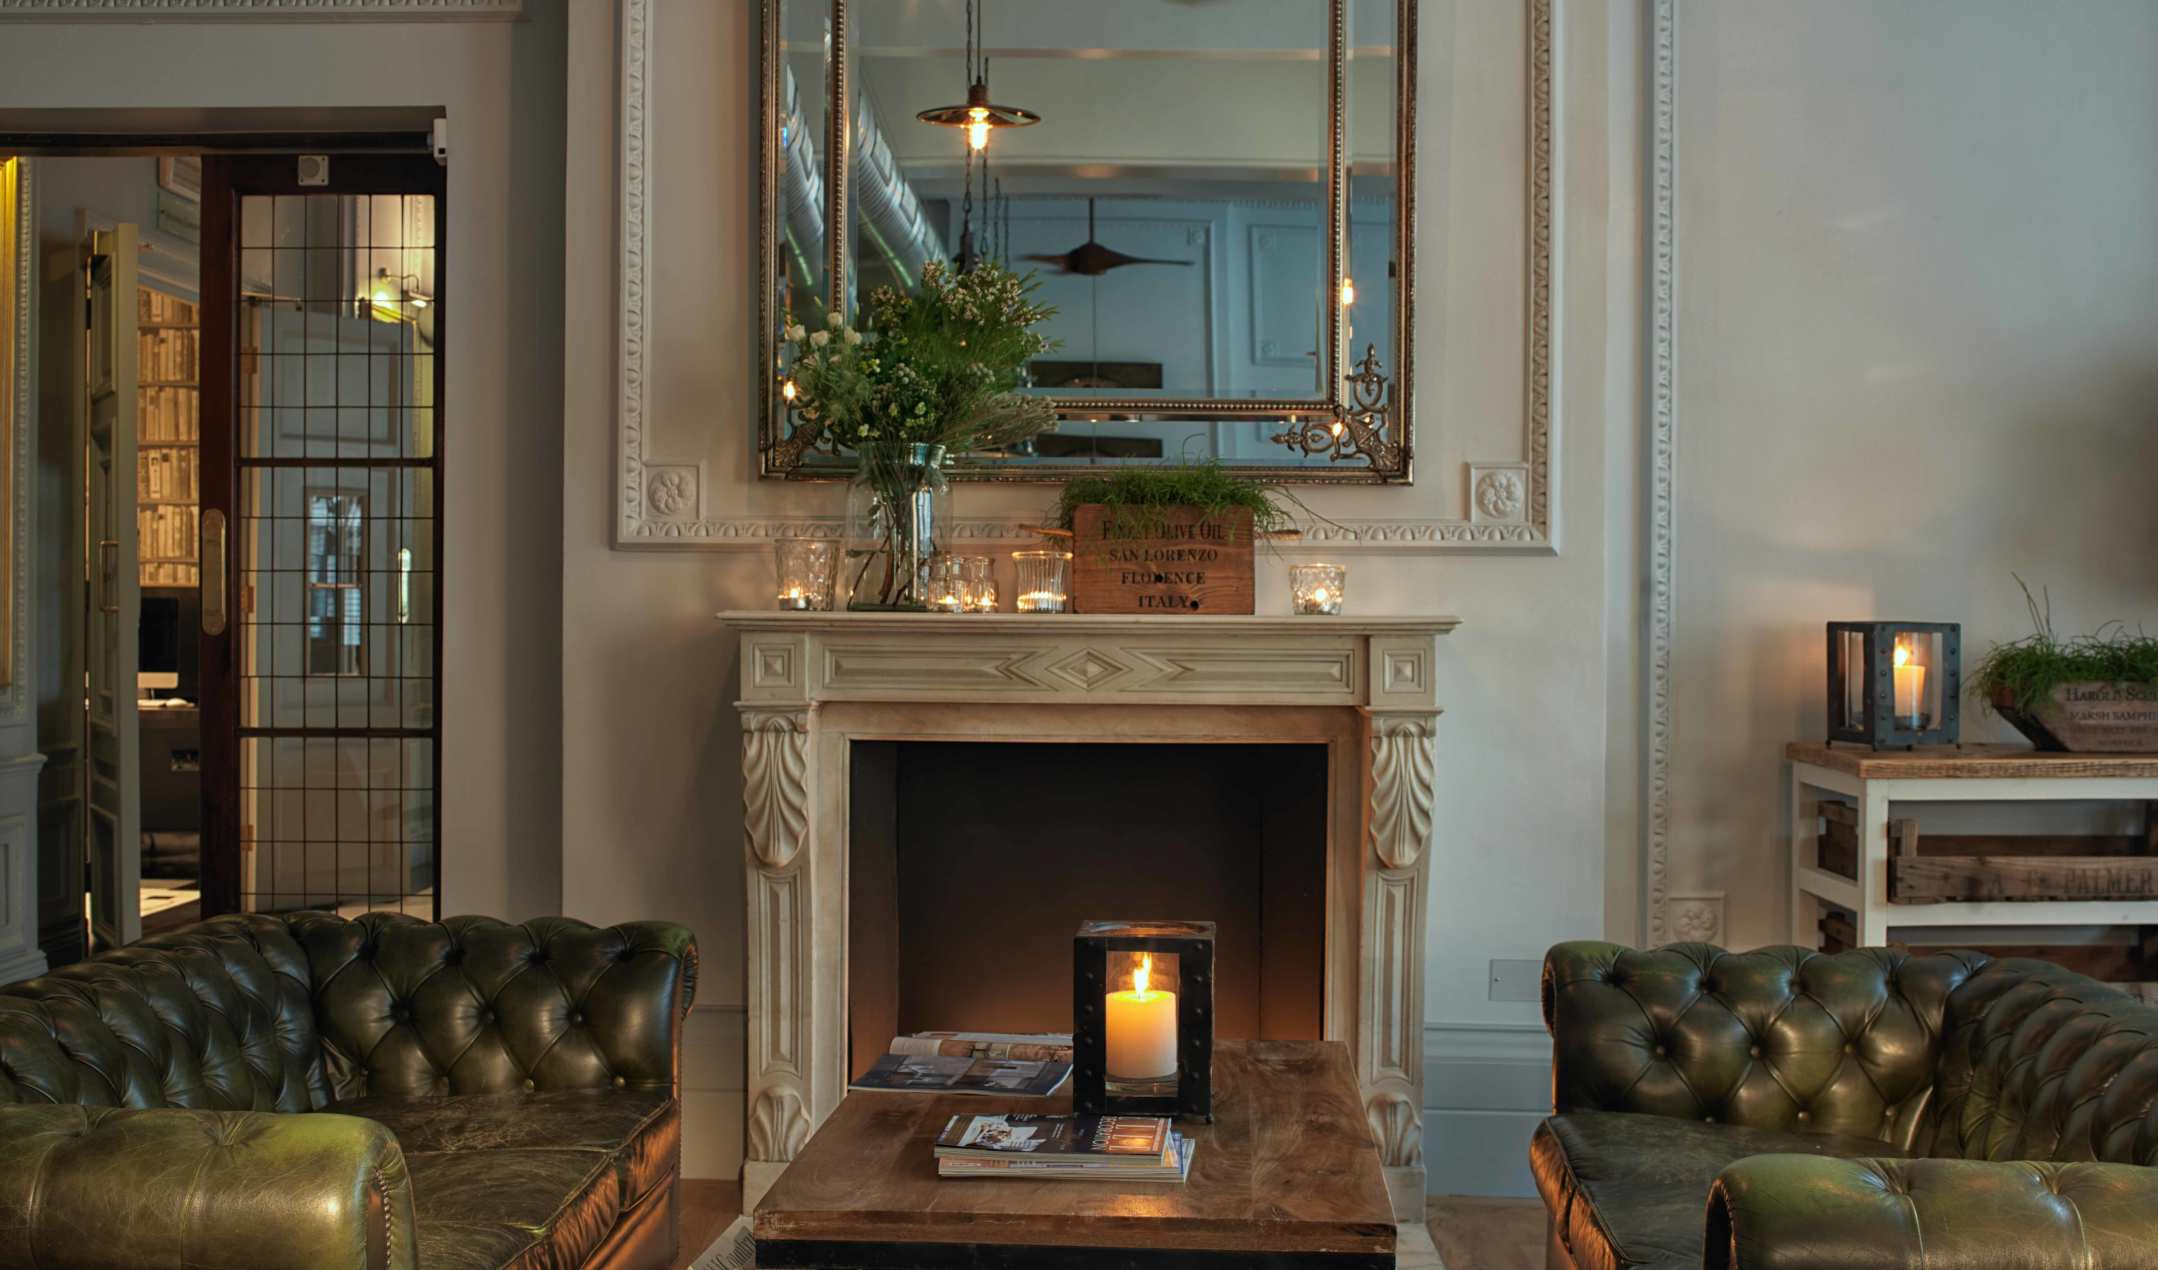 Fireplace at the Radisson Blu Edwardian Vanderbilt Hotel in London